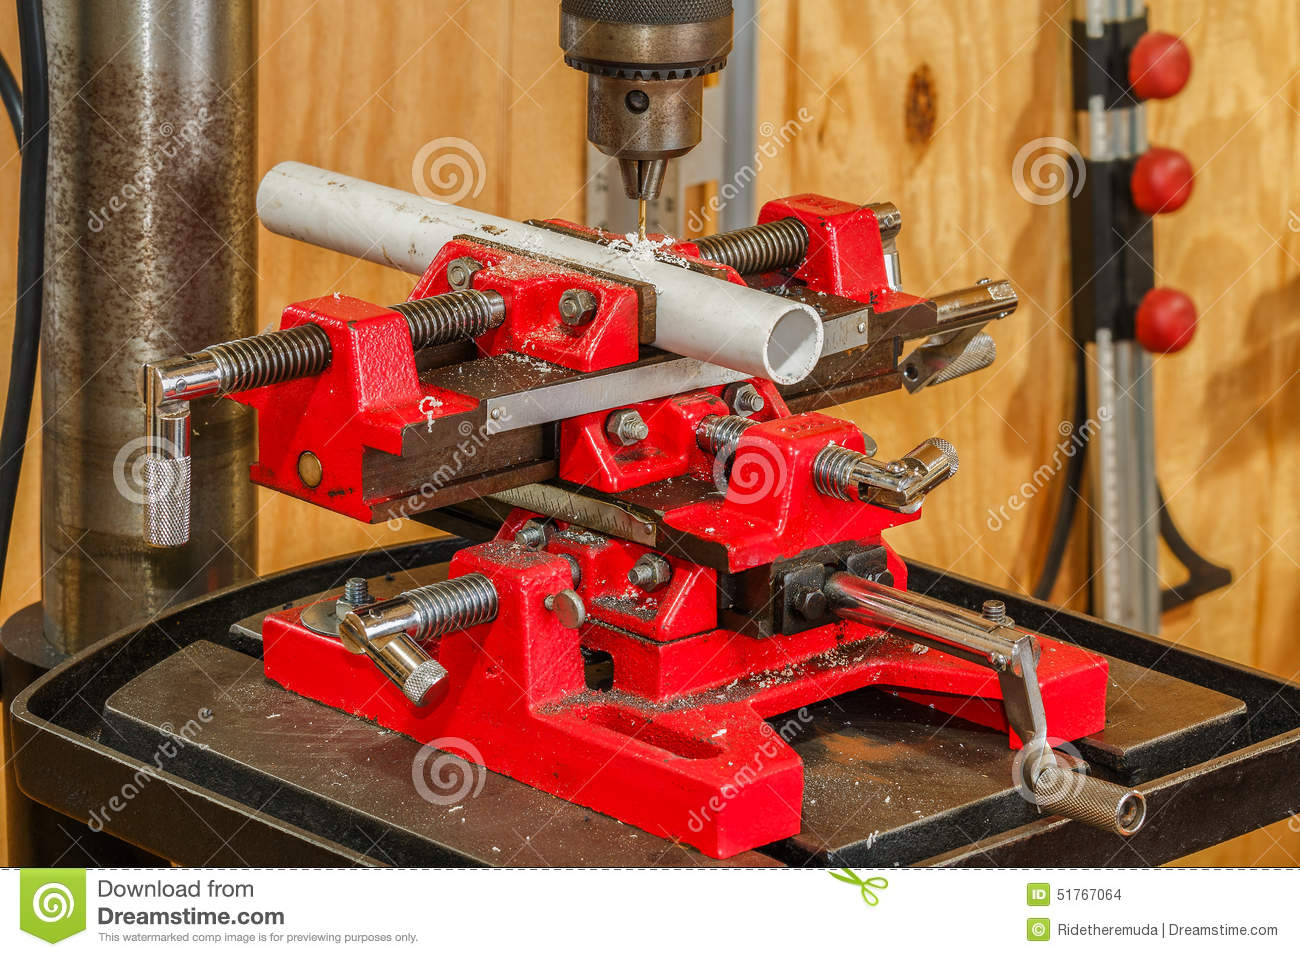 Drilling pvc pipe stock photo image